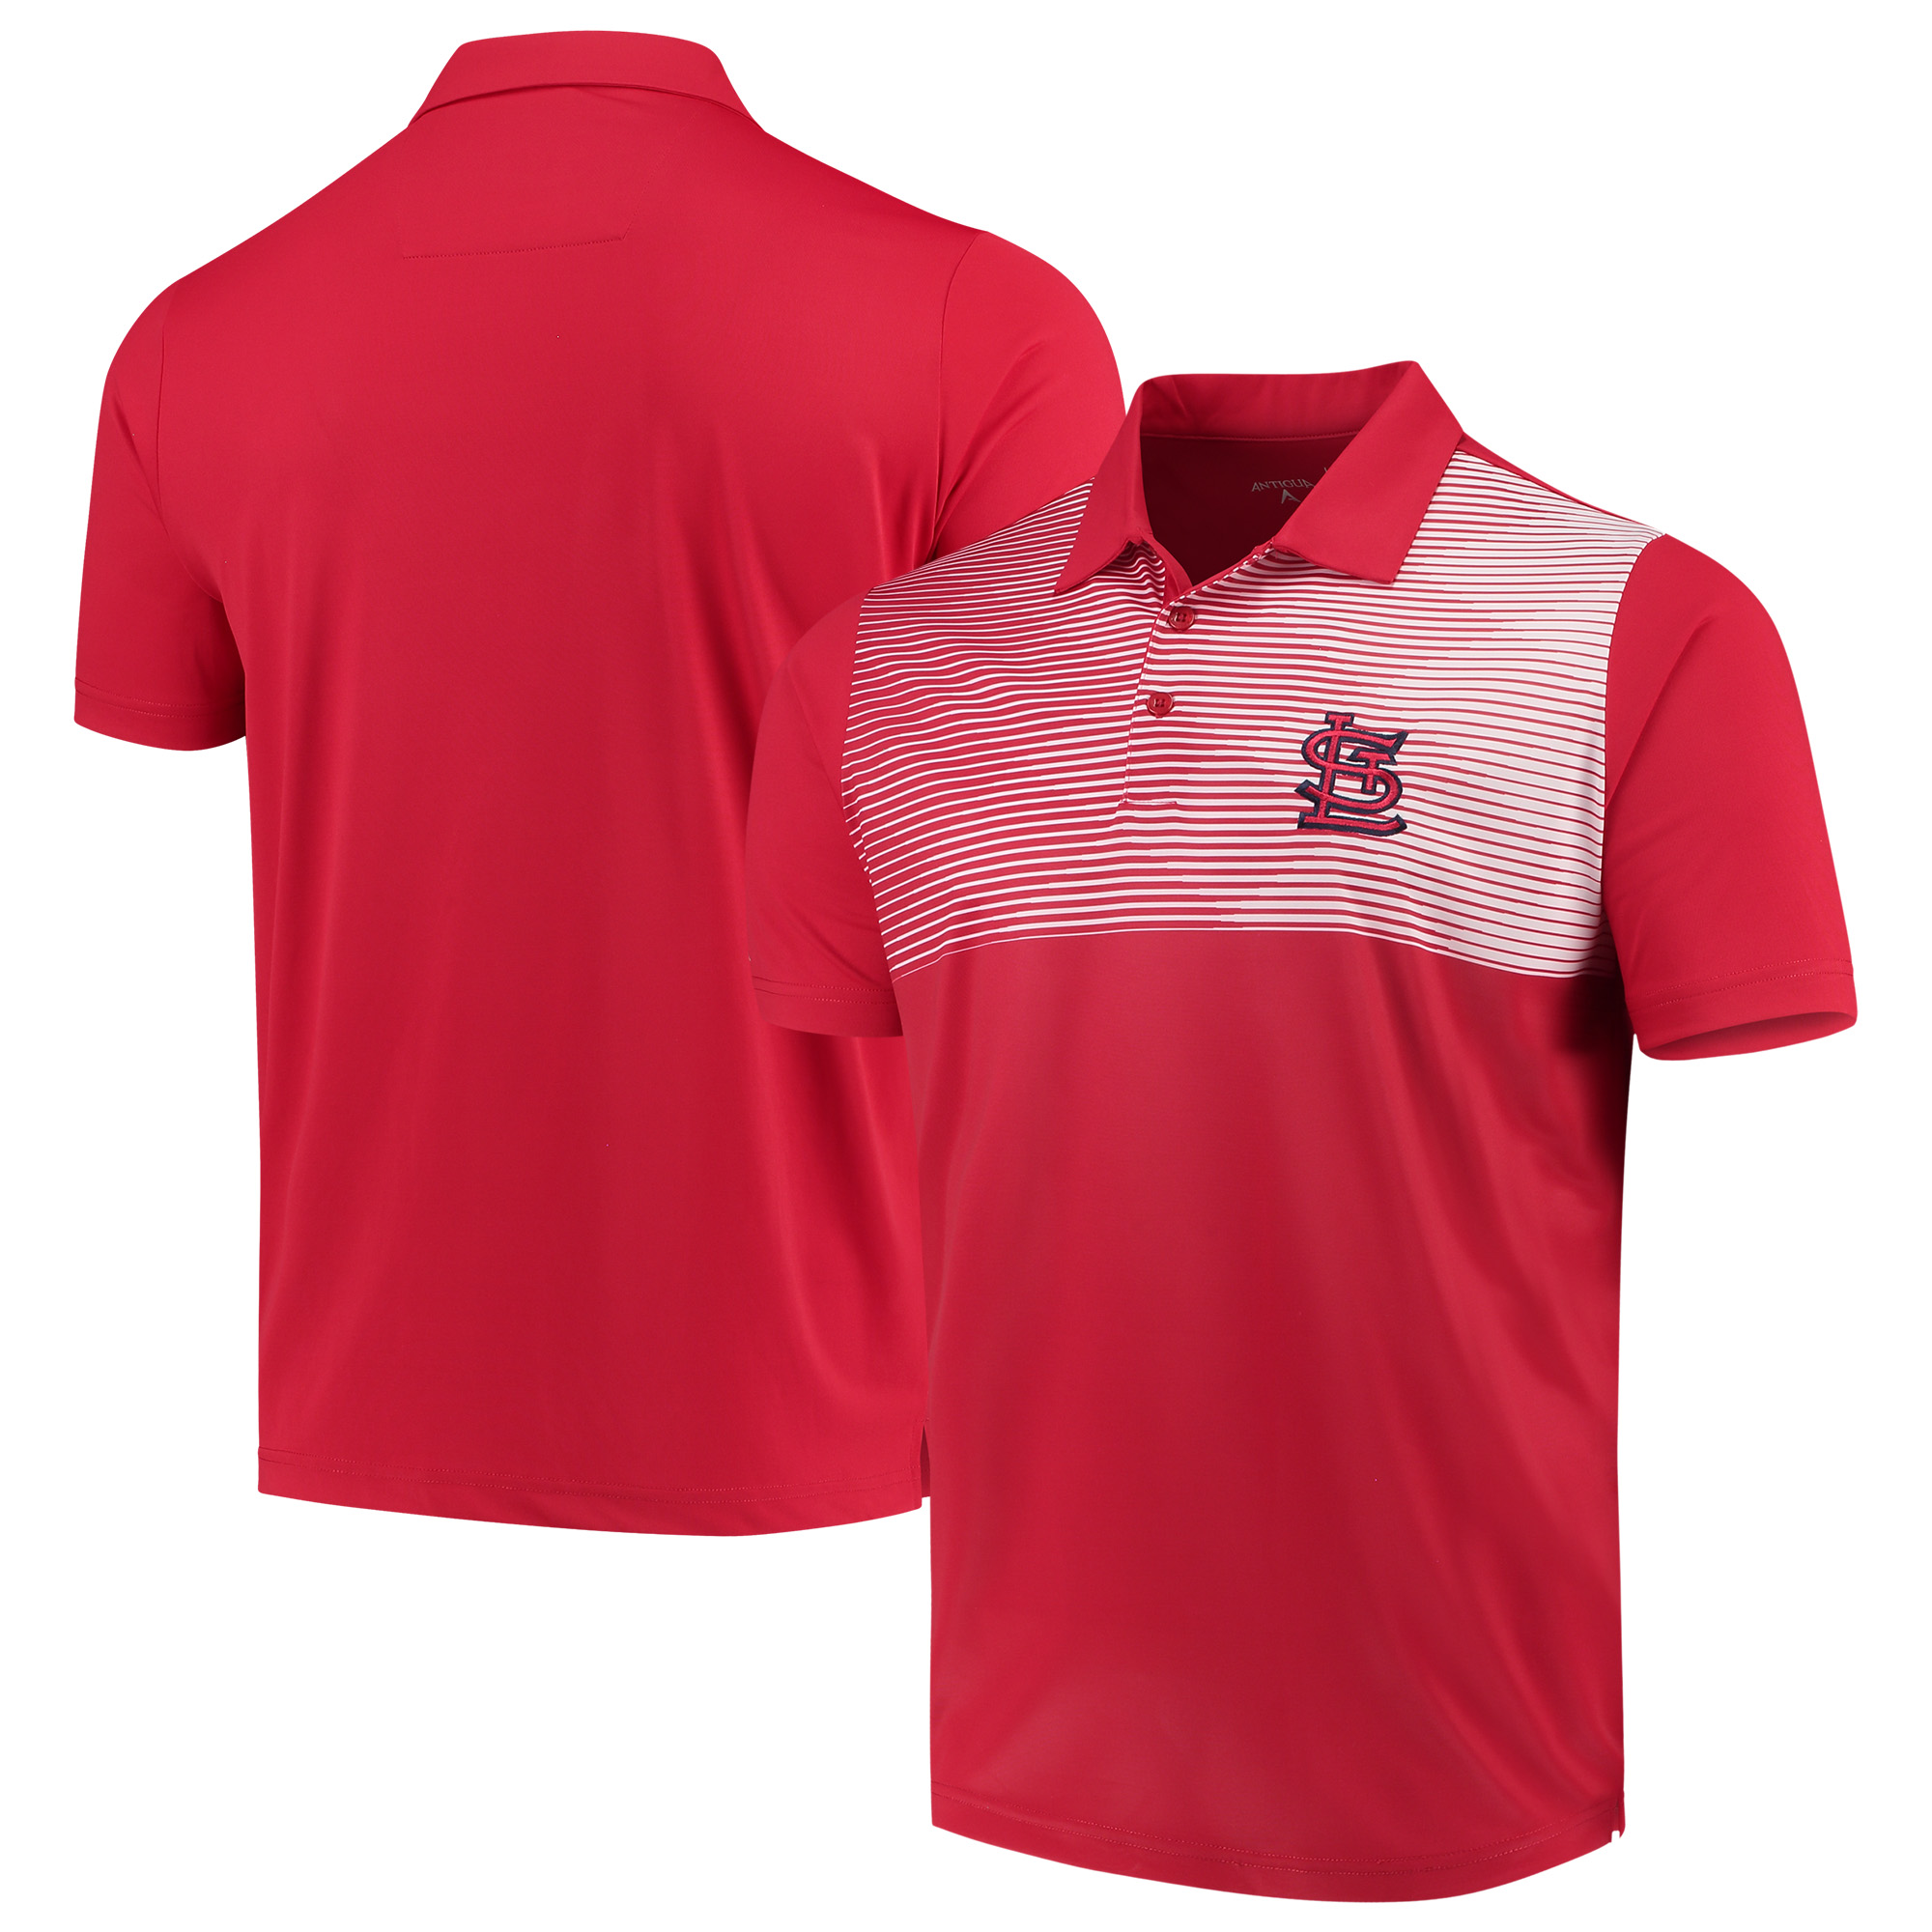 St. Louis Cardinals Antigua Tactic Polo - Red/White